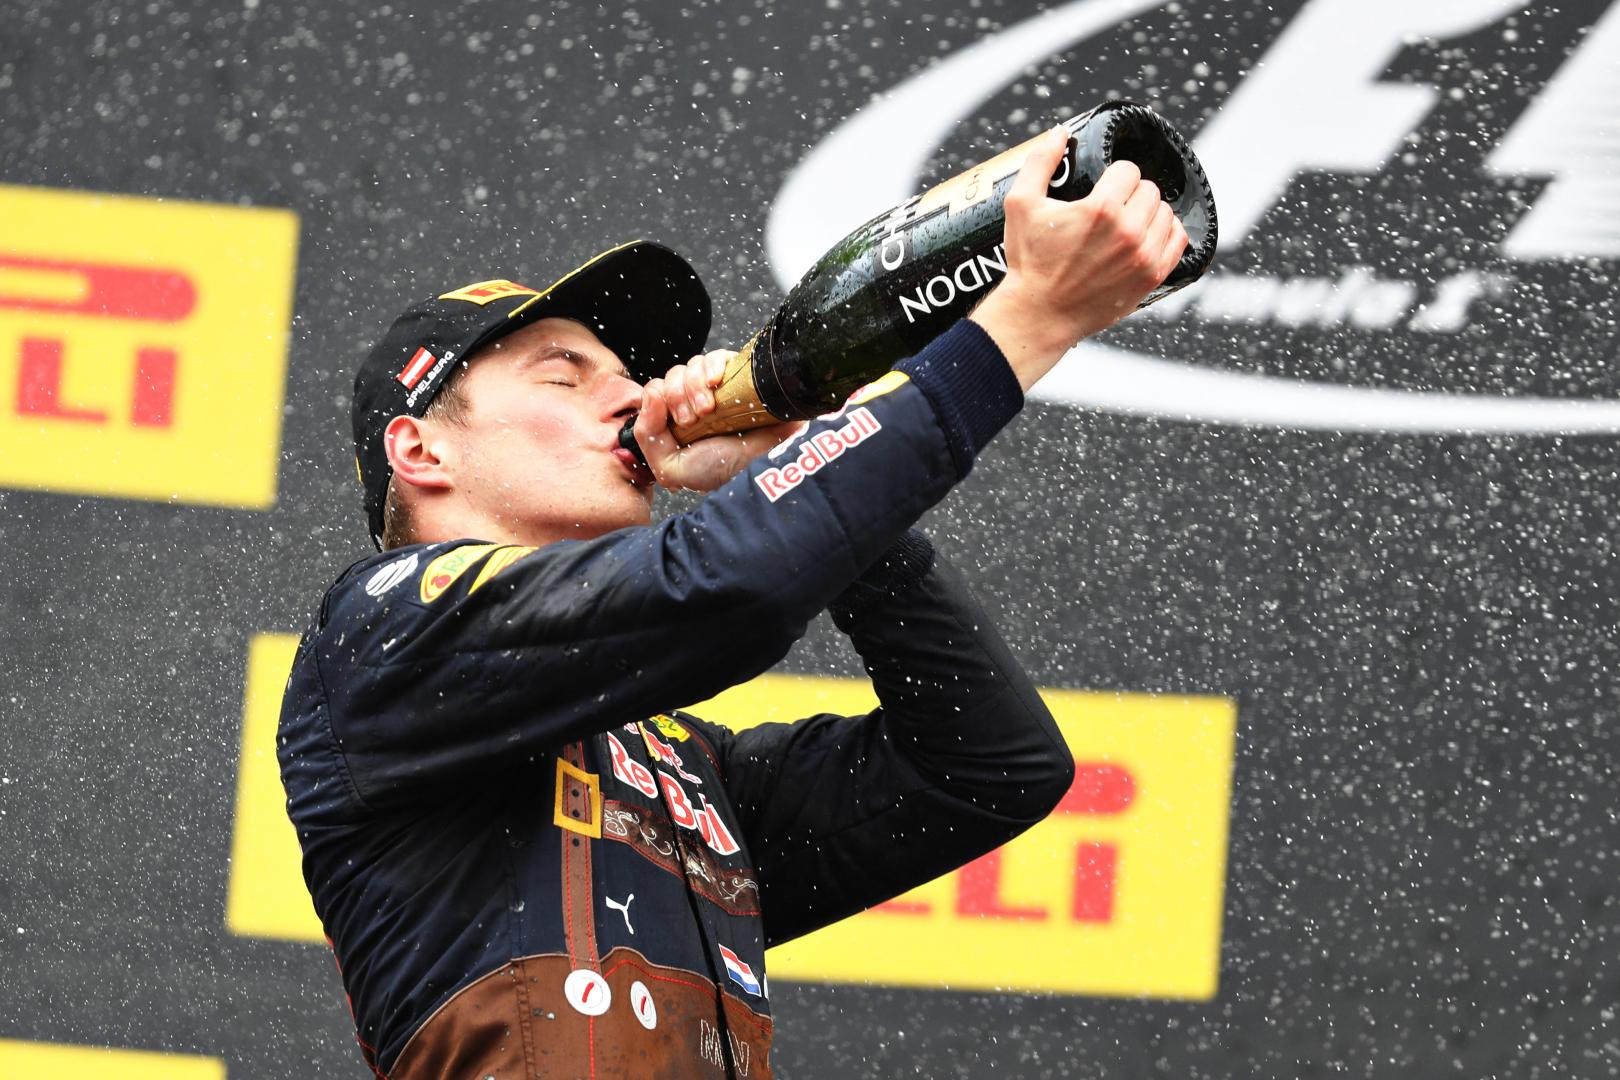 Max Verstappen is 'Driver of the Day'